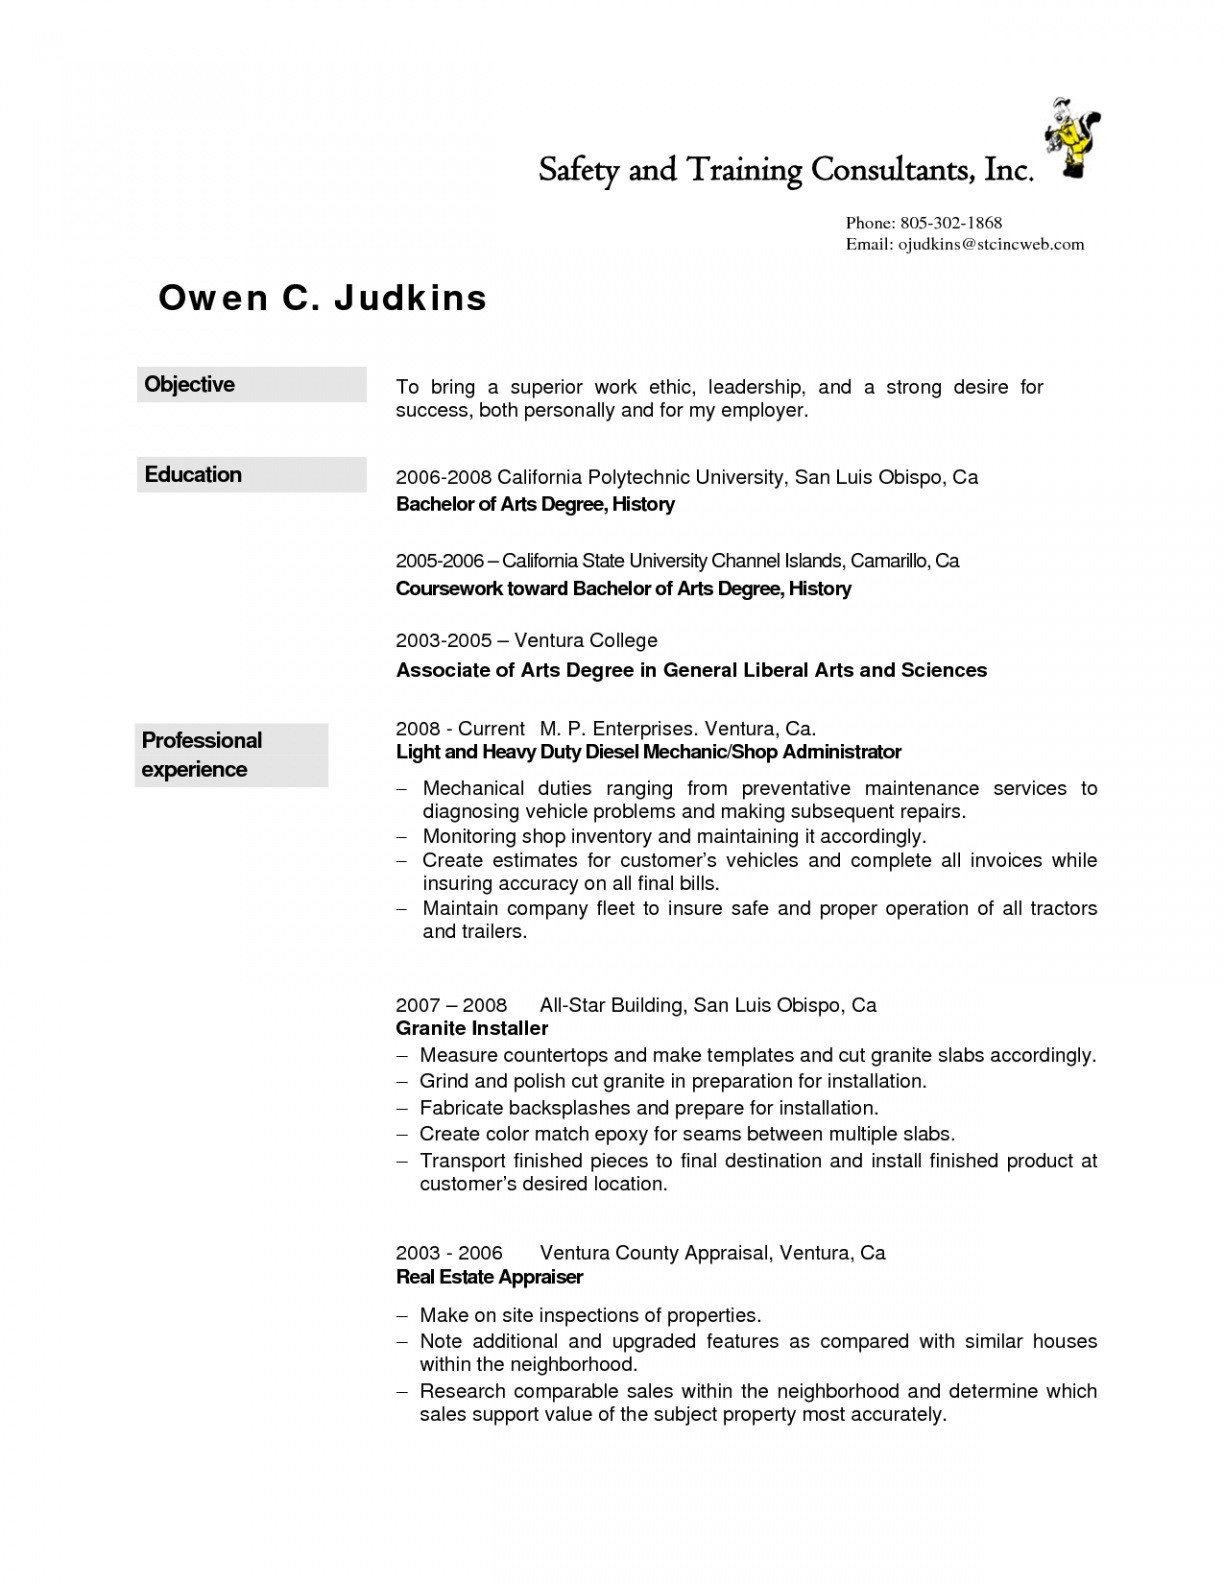 diesel truck mechanic resume Collection-Diesel Mechanic Resume aurelianmg 3-c